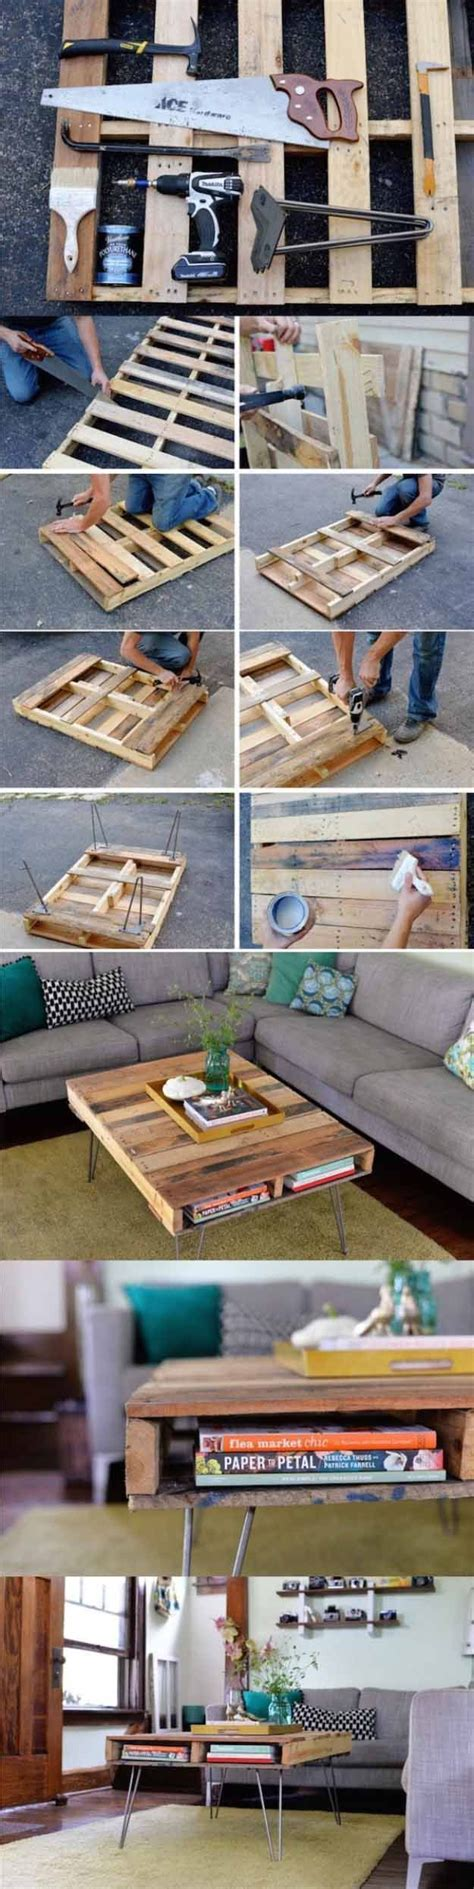 diy home decor blogadda collectives 17 best ideas about diy home decor on pinterest home